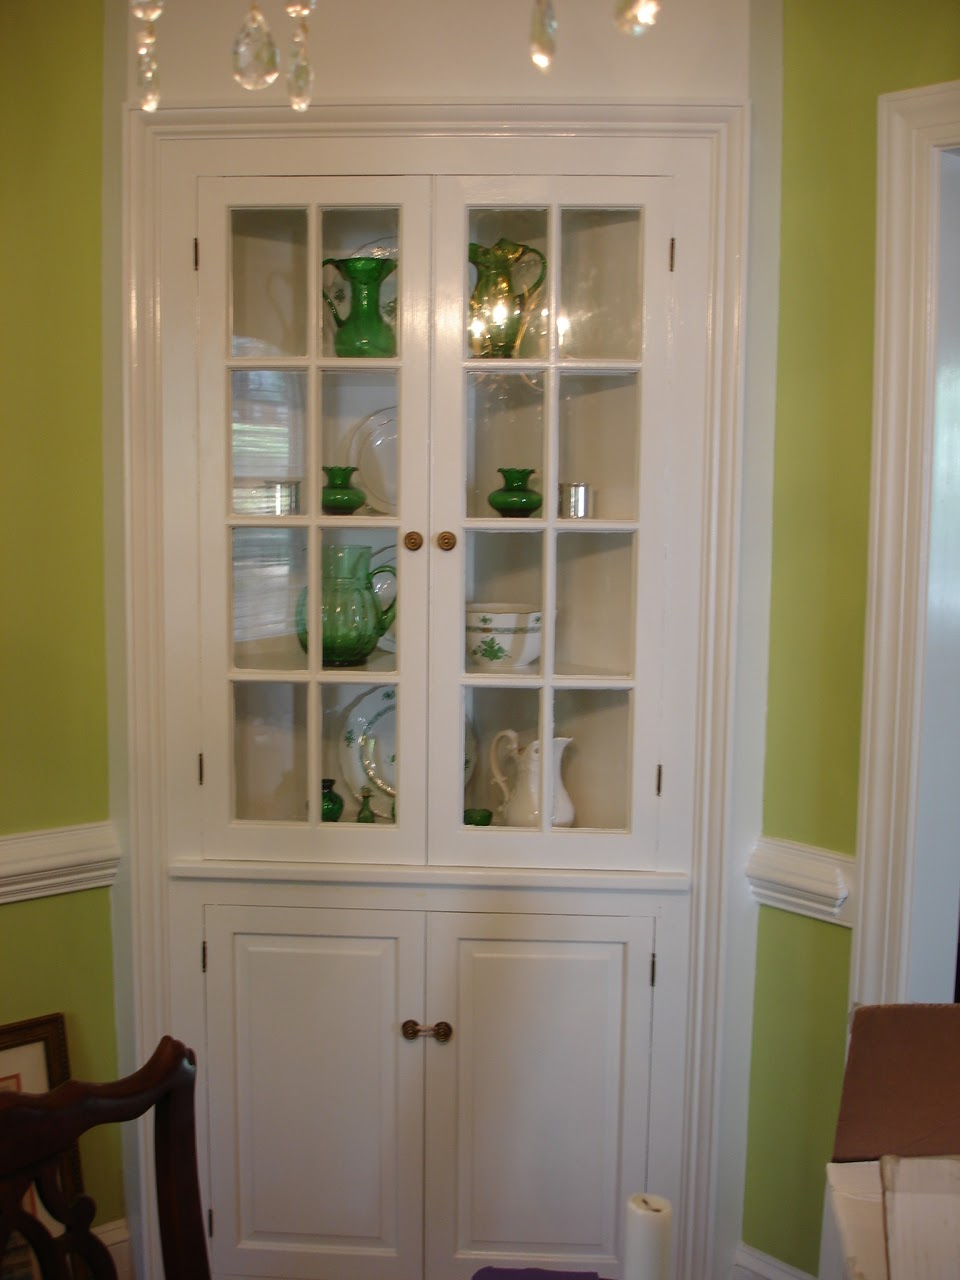 Richmond Real Estate Mom: Dining Room Updates